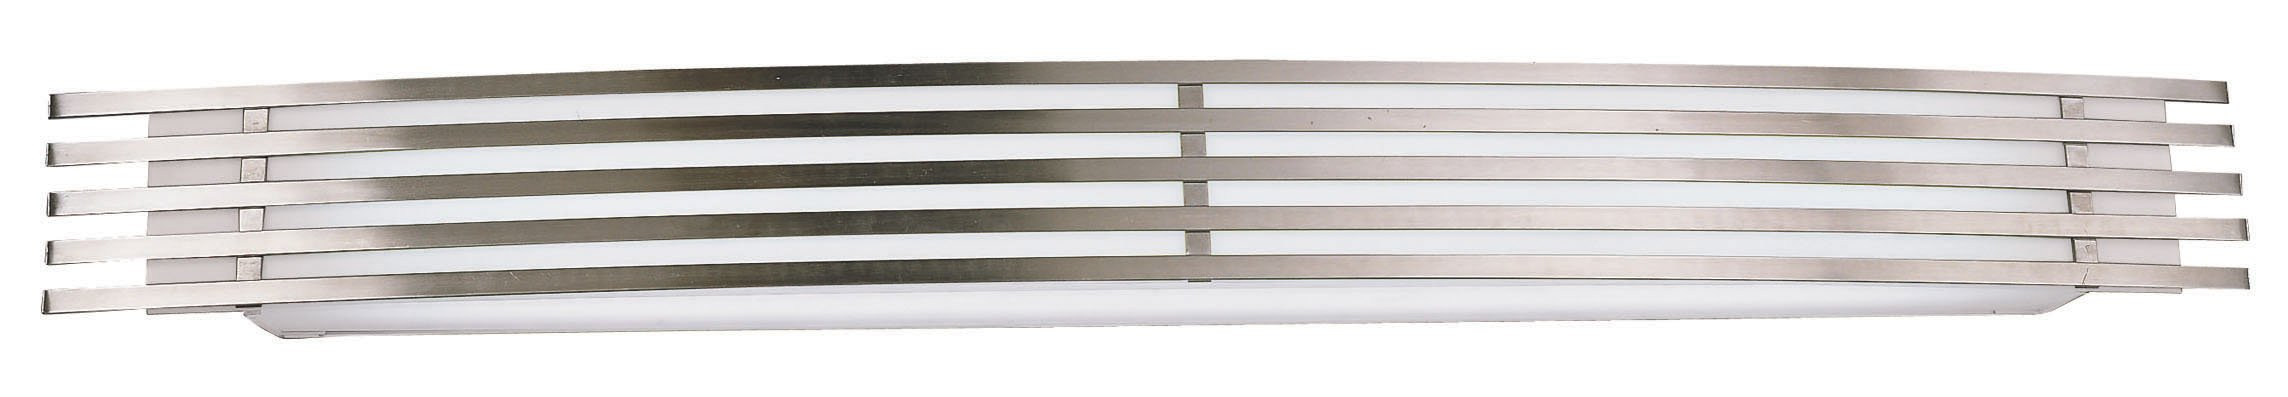 Lighting by AFX BBV217SAMV Bilbao Multi-Volt 17-Watt Wall Sconce, Satin Aluminum Finish with Frosted White Glass